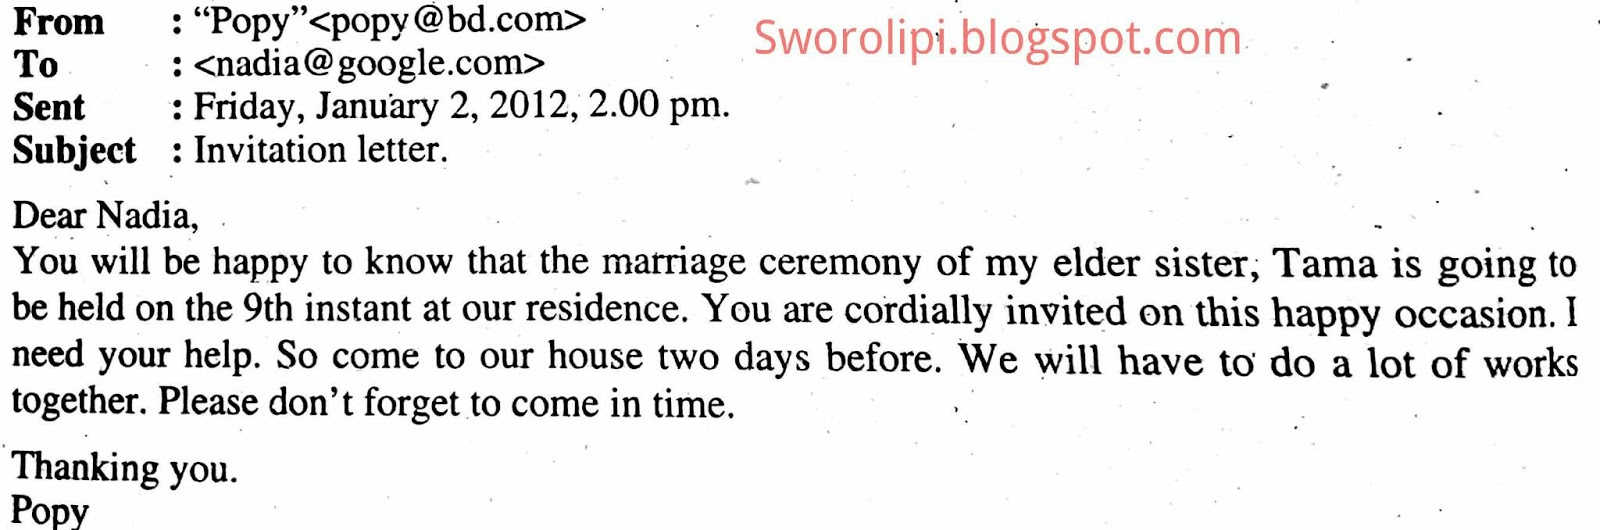 Email invitation letter to attend elder sister marriage ceremony email invitation letter to attend elder sister marriage ceremony stopboris Images